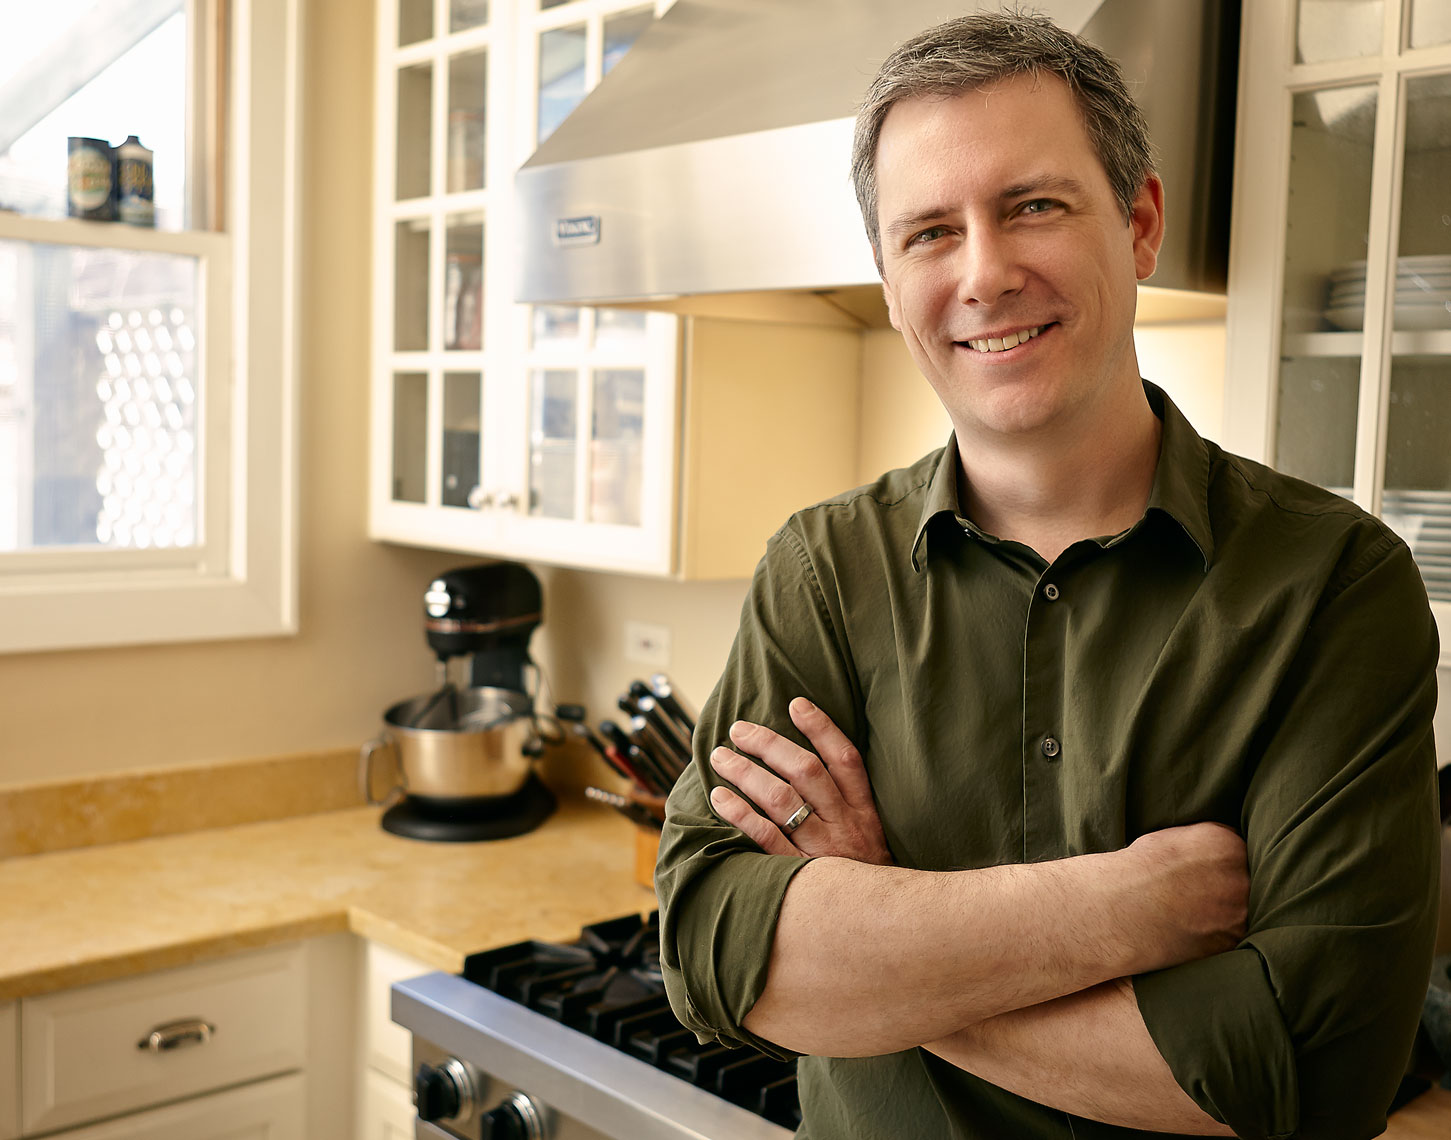 Smiling man standing in his kitchen